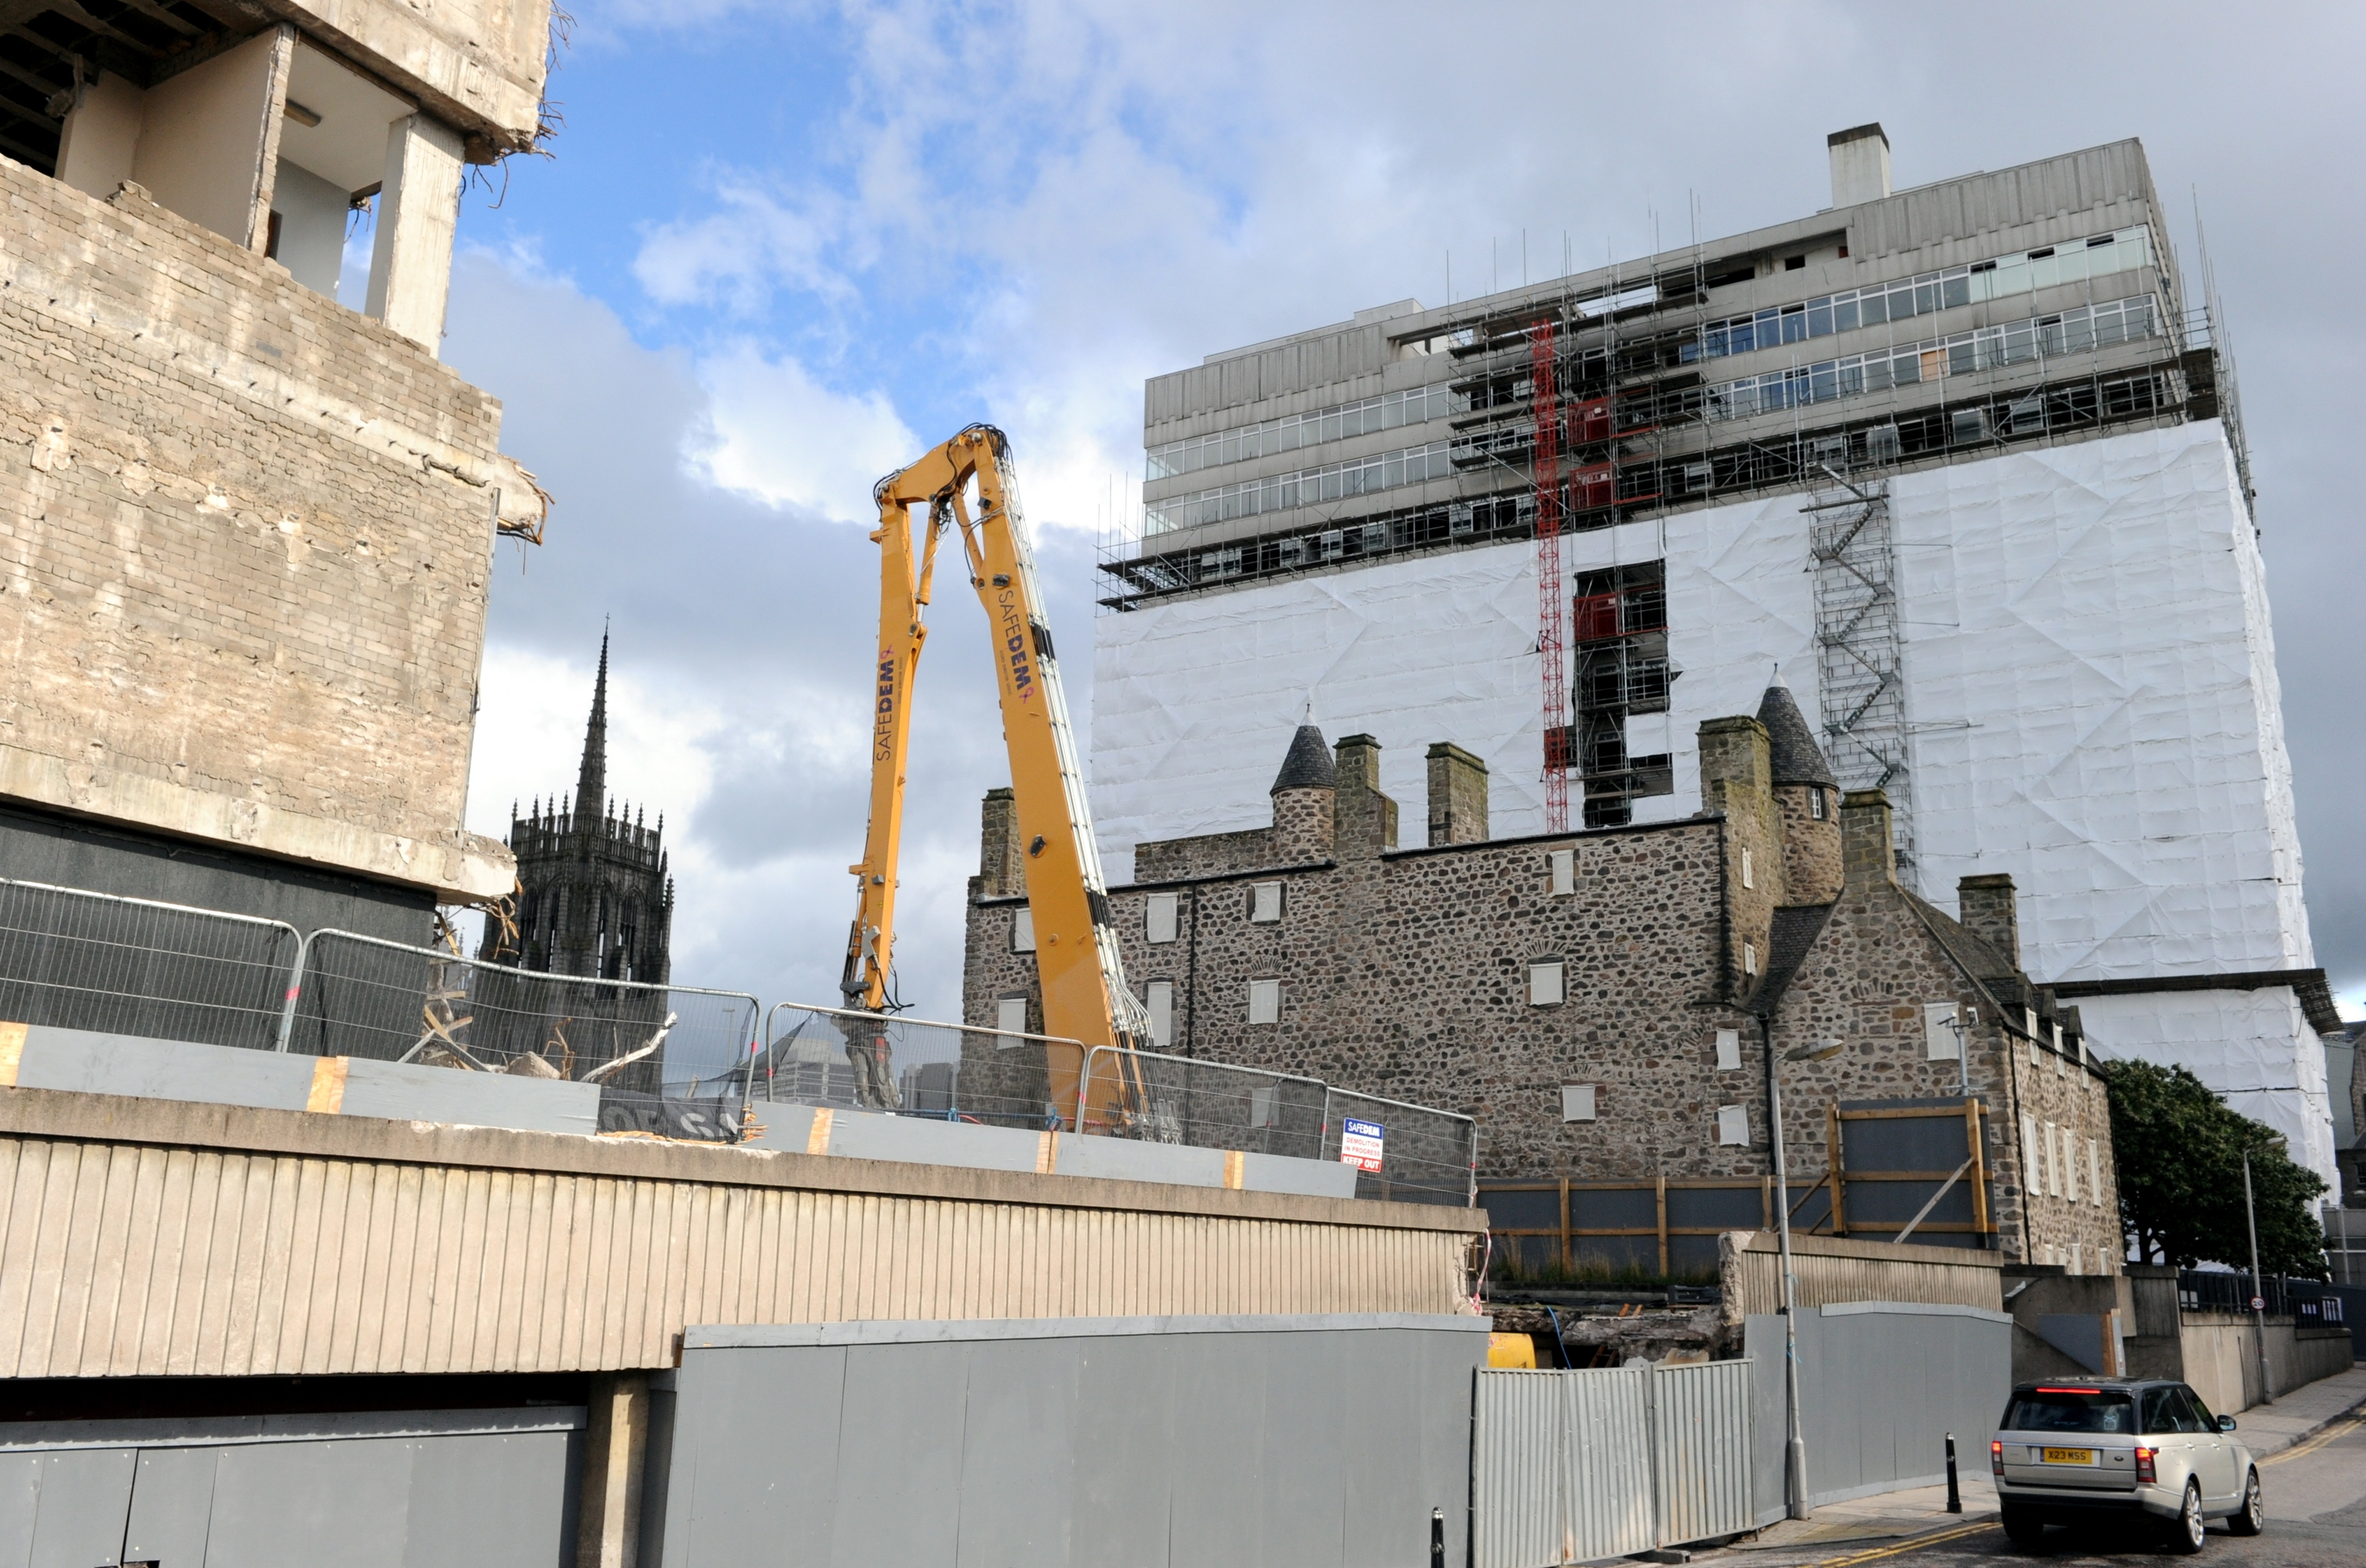 Demolition of St Nicholas House was delayed